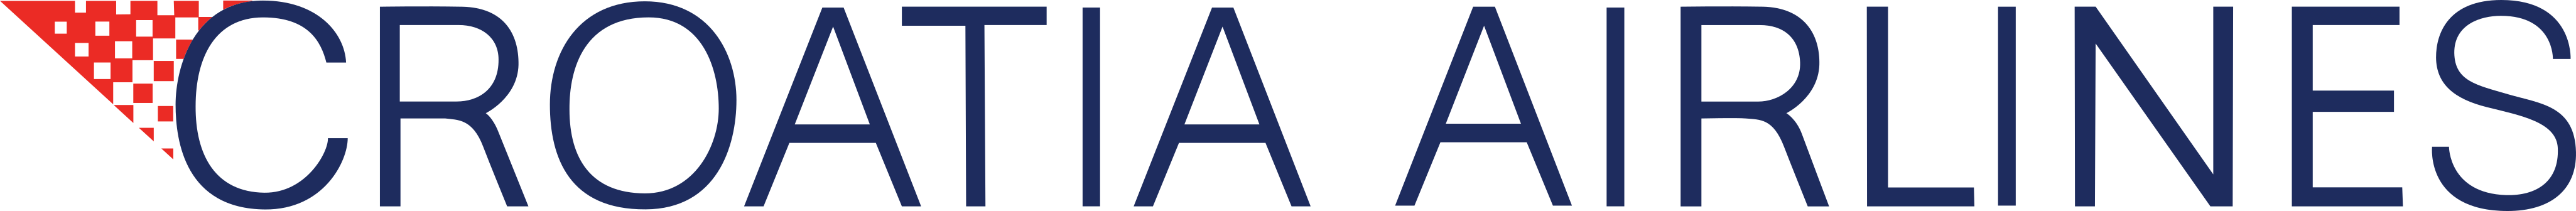 croatia airlines logo - Croatia Airlines Logo